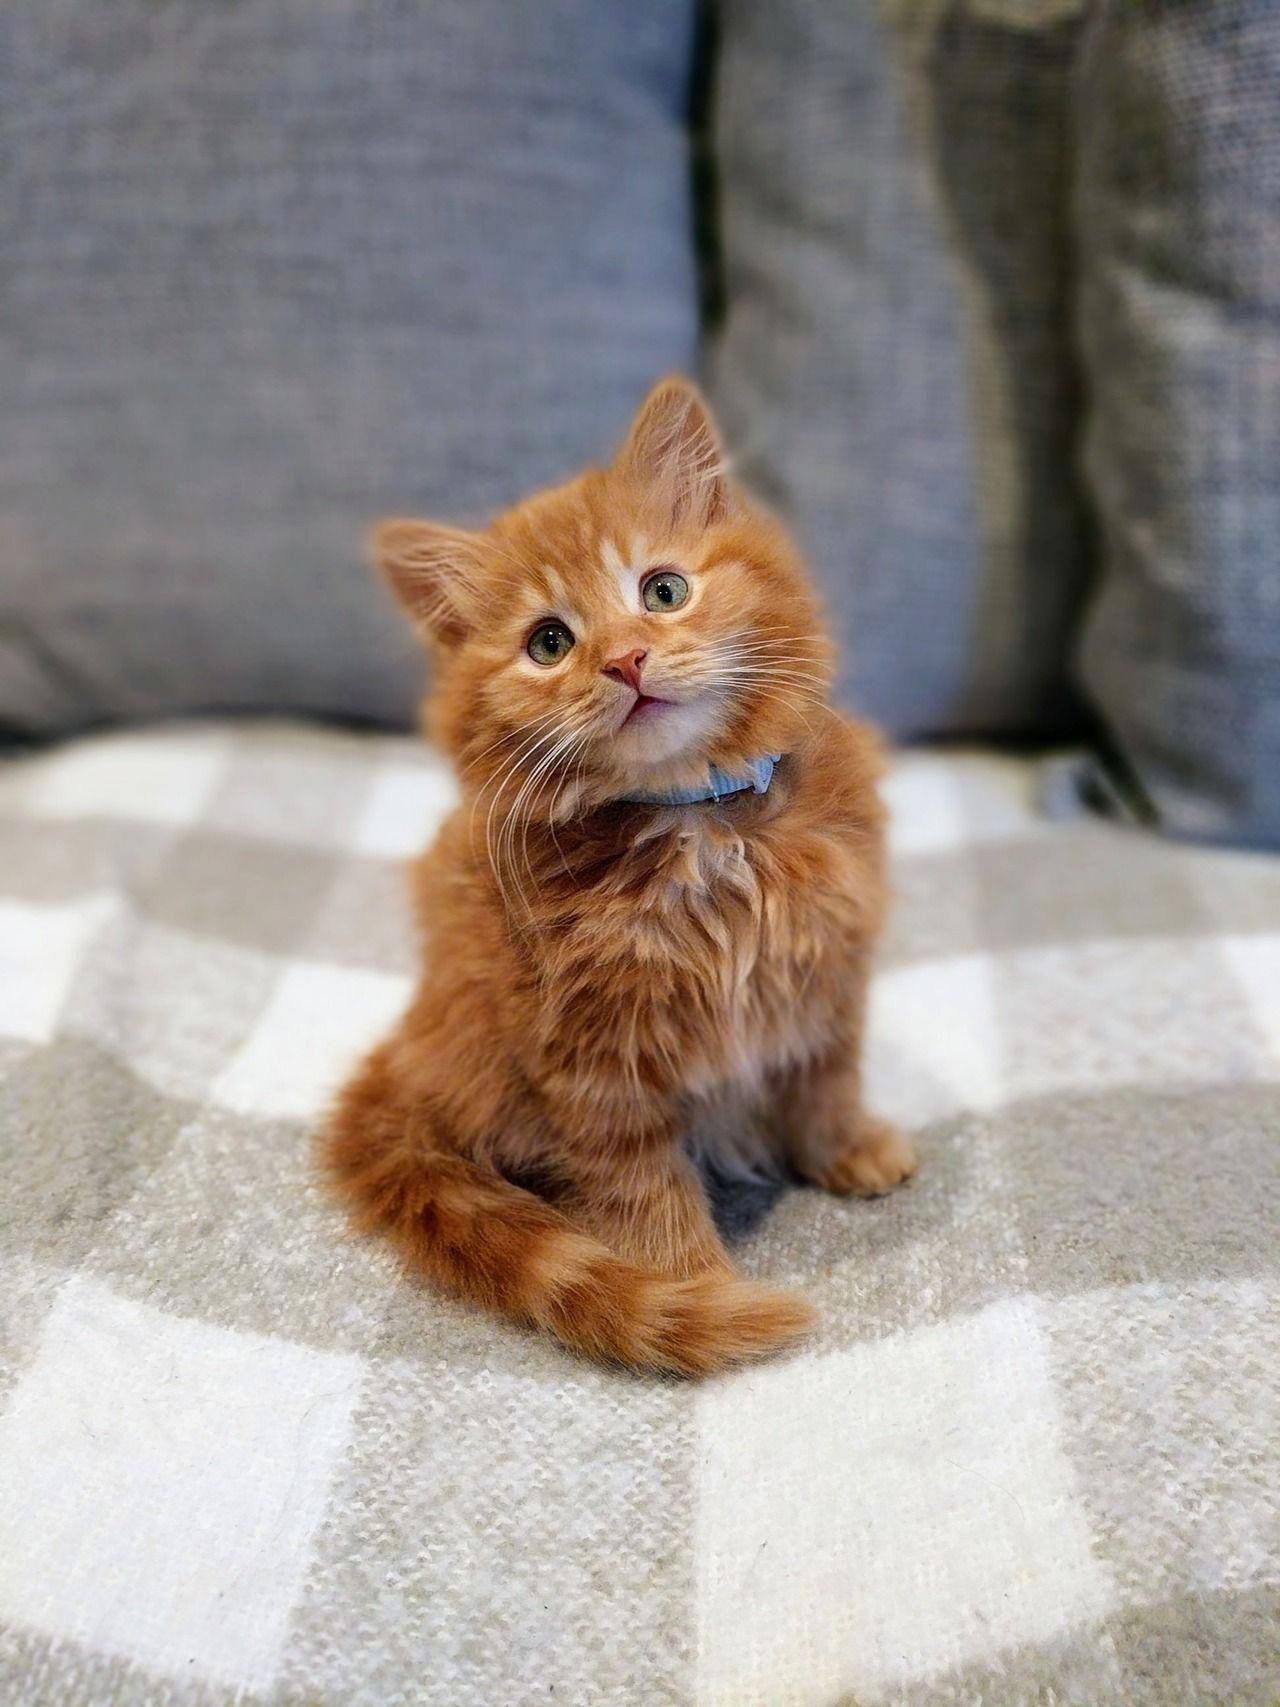 Little Kitty Cat Is Beyond Cute Cute Cats Cute Animals Cute Cats And Kittens